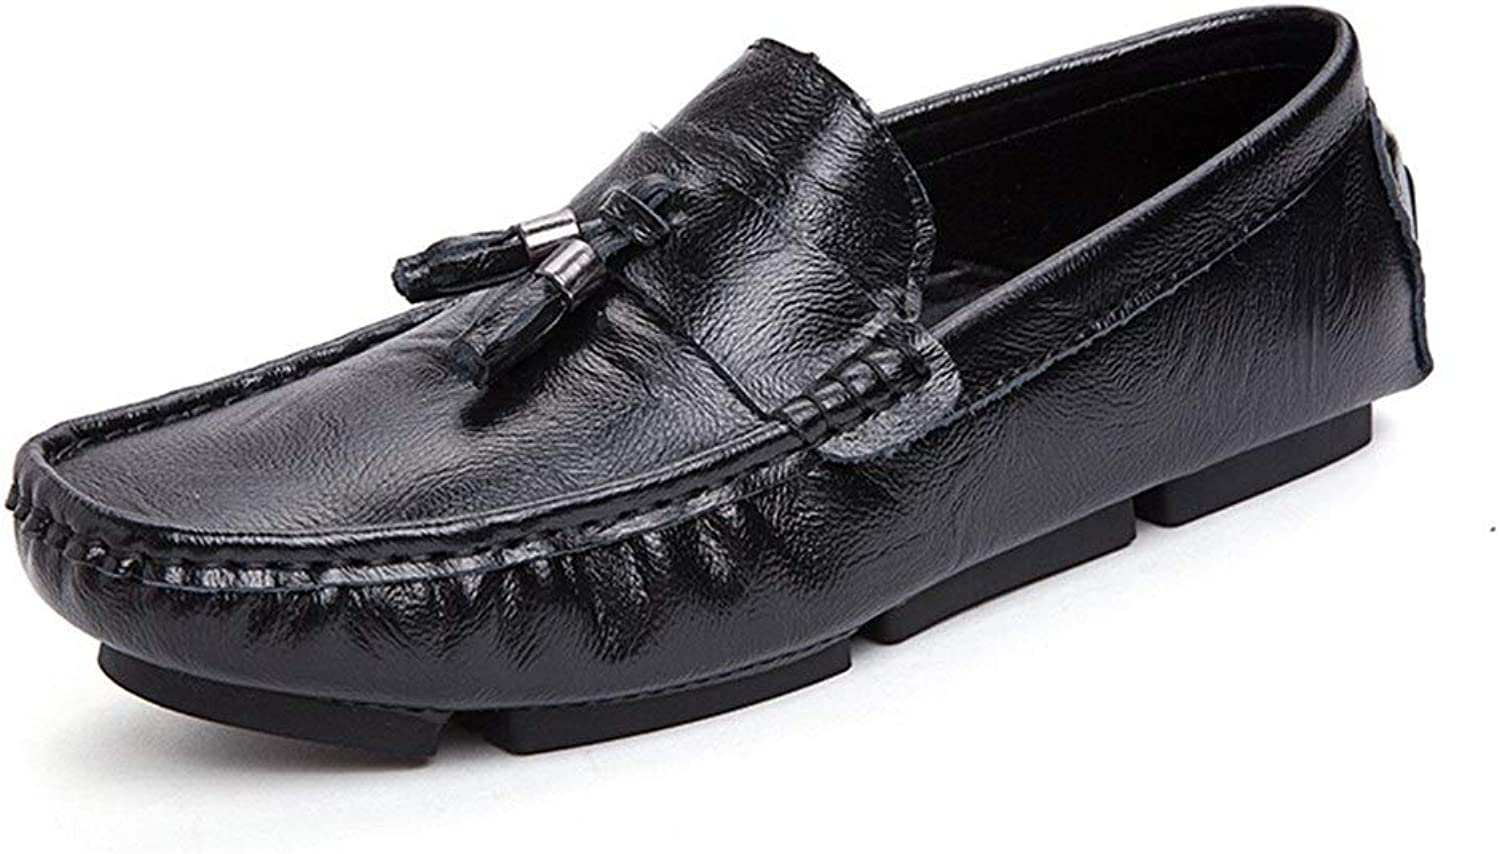 Fashion Lightweight Driving Loafer for Men Moccasins Slip On Style Microfiber Leather Classic Tassel Flexible Boat Men's Boots (color   Black, Size   6 UK)